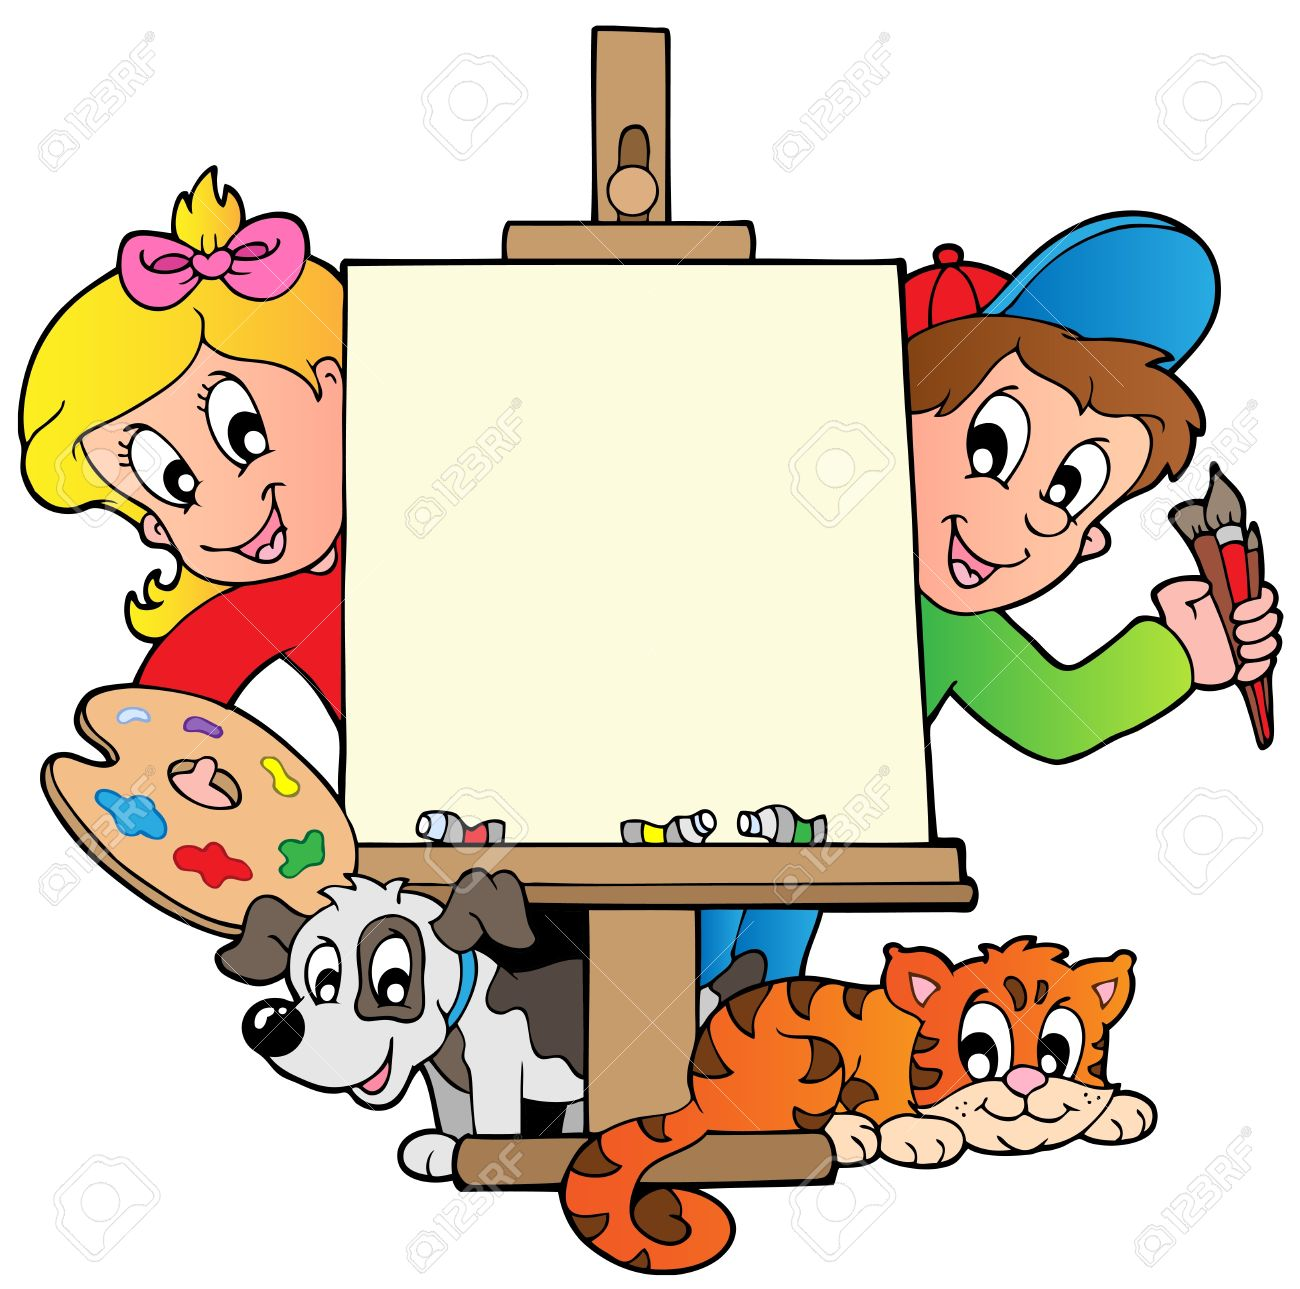 Kids artwork clipart png library Kids Artwork Stock Photos & Pictures. Royalty Free Kids Artwork ... png library